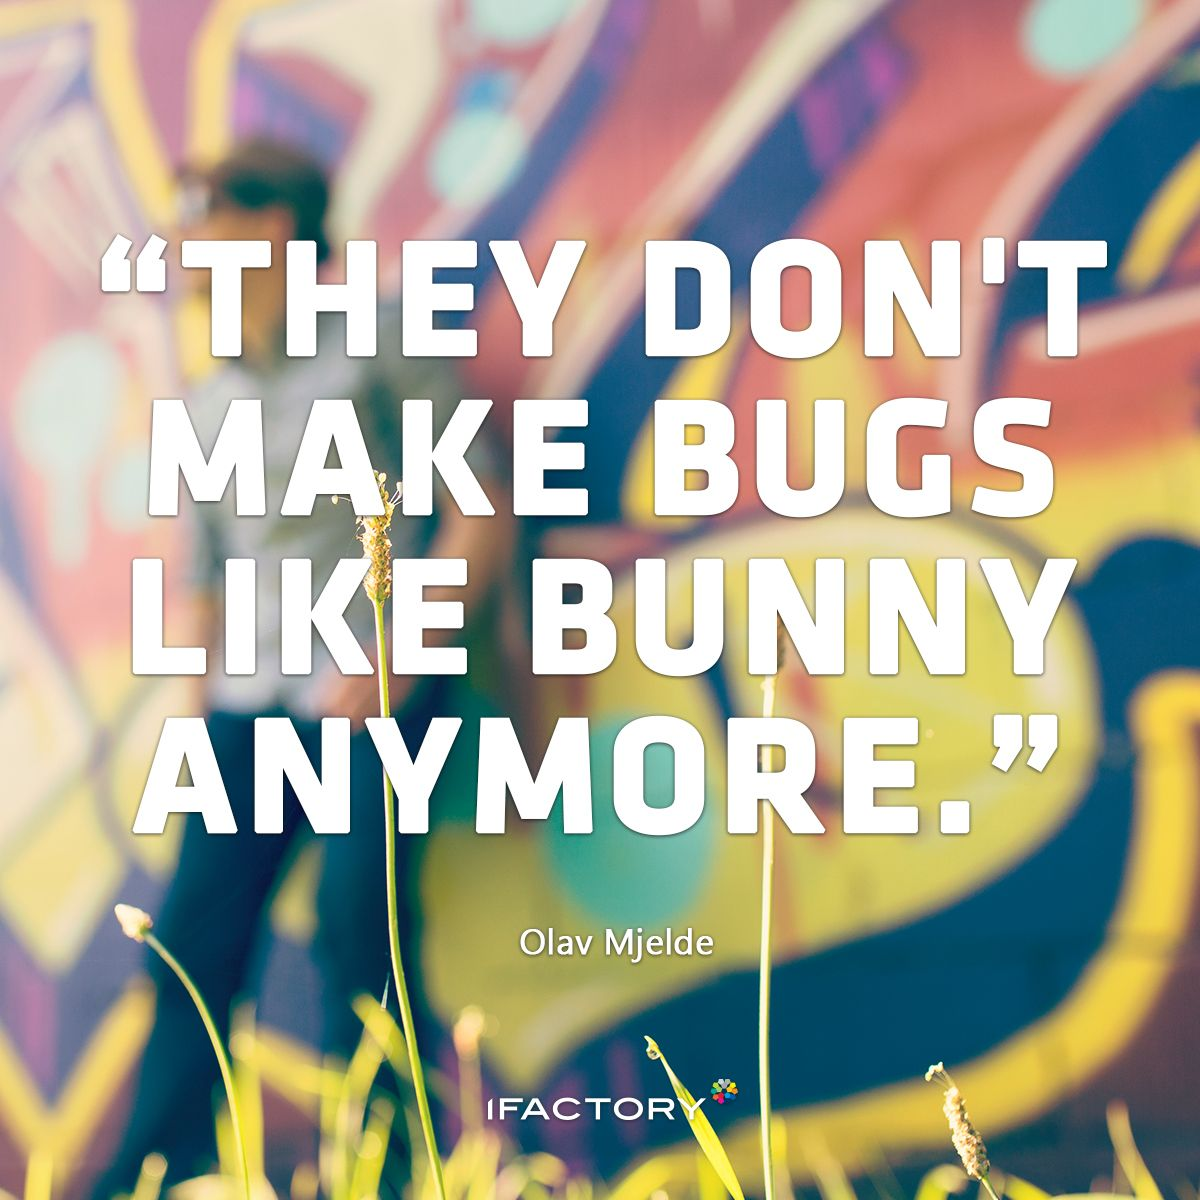 """They don't make bugs like Bunny anymore."" — Olav Mjelde. #ifactory #quote #inspiration #motivation #inspo #quotes #quotes"